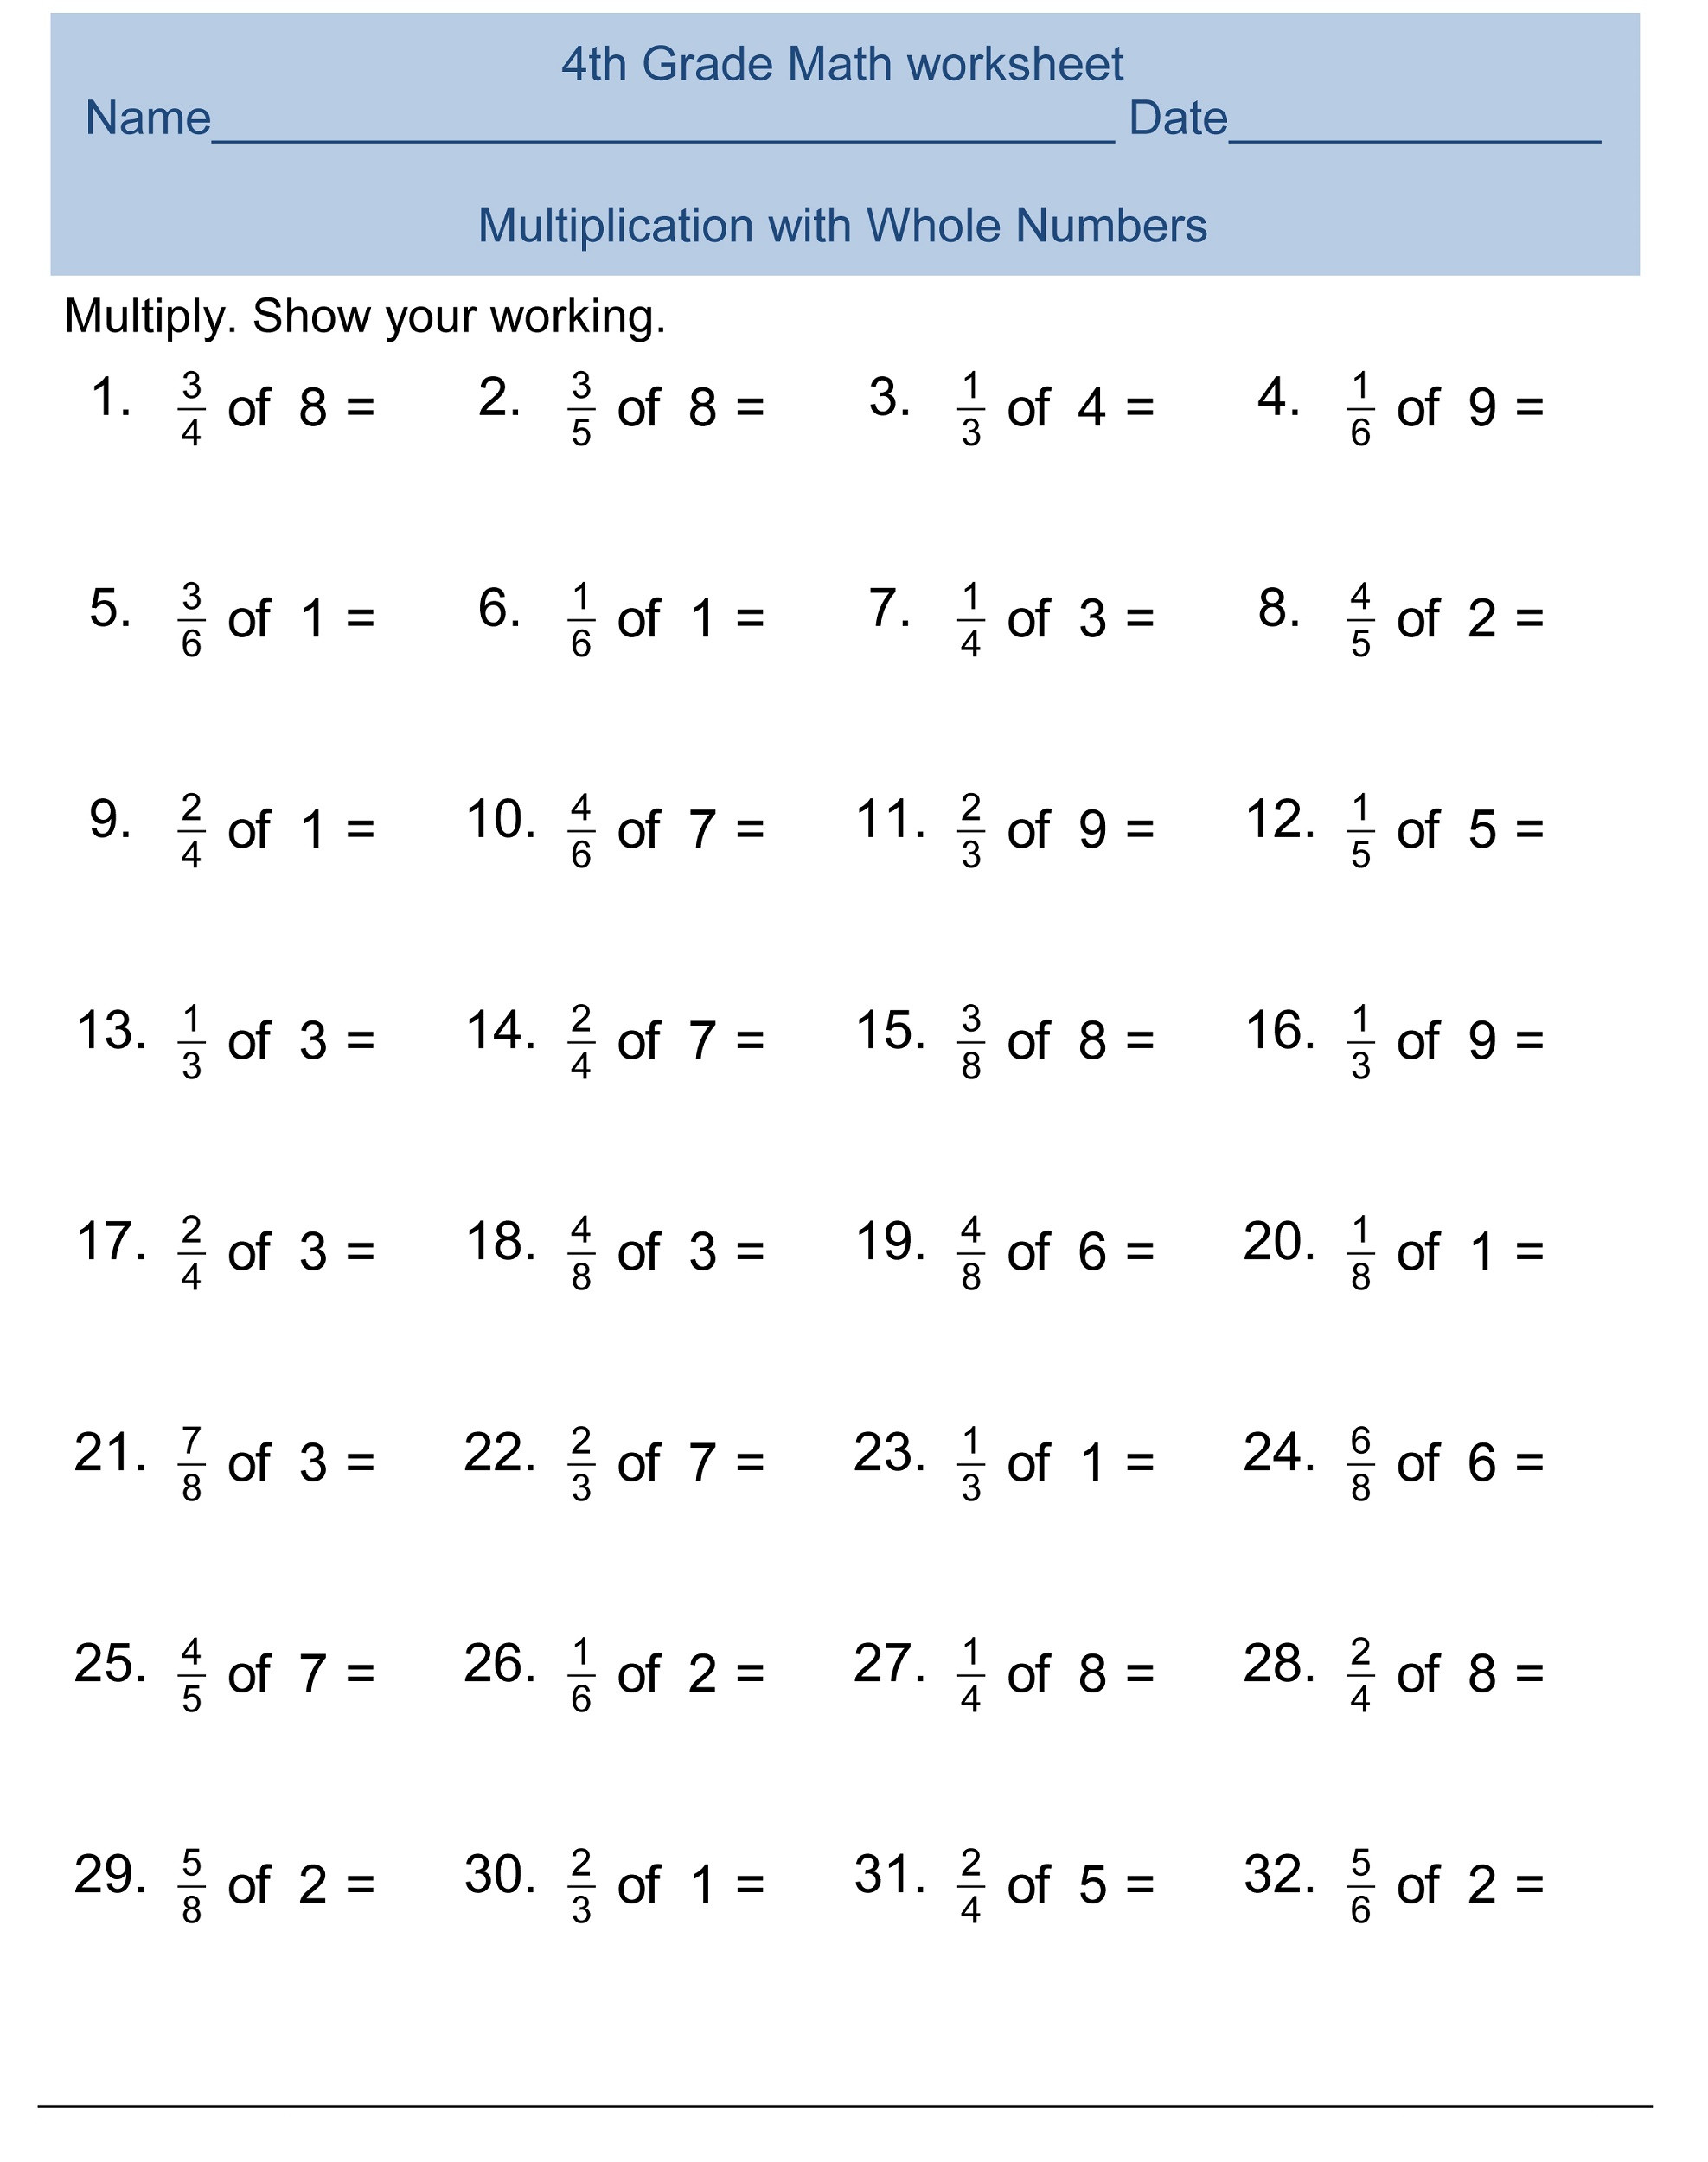 10th Grade Math Worksheets Free 4th Grade Math Worksheets Activity Shelter Fourth